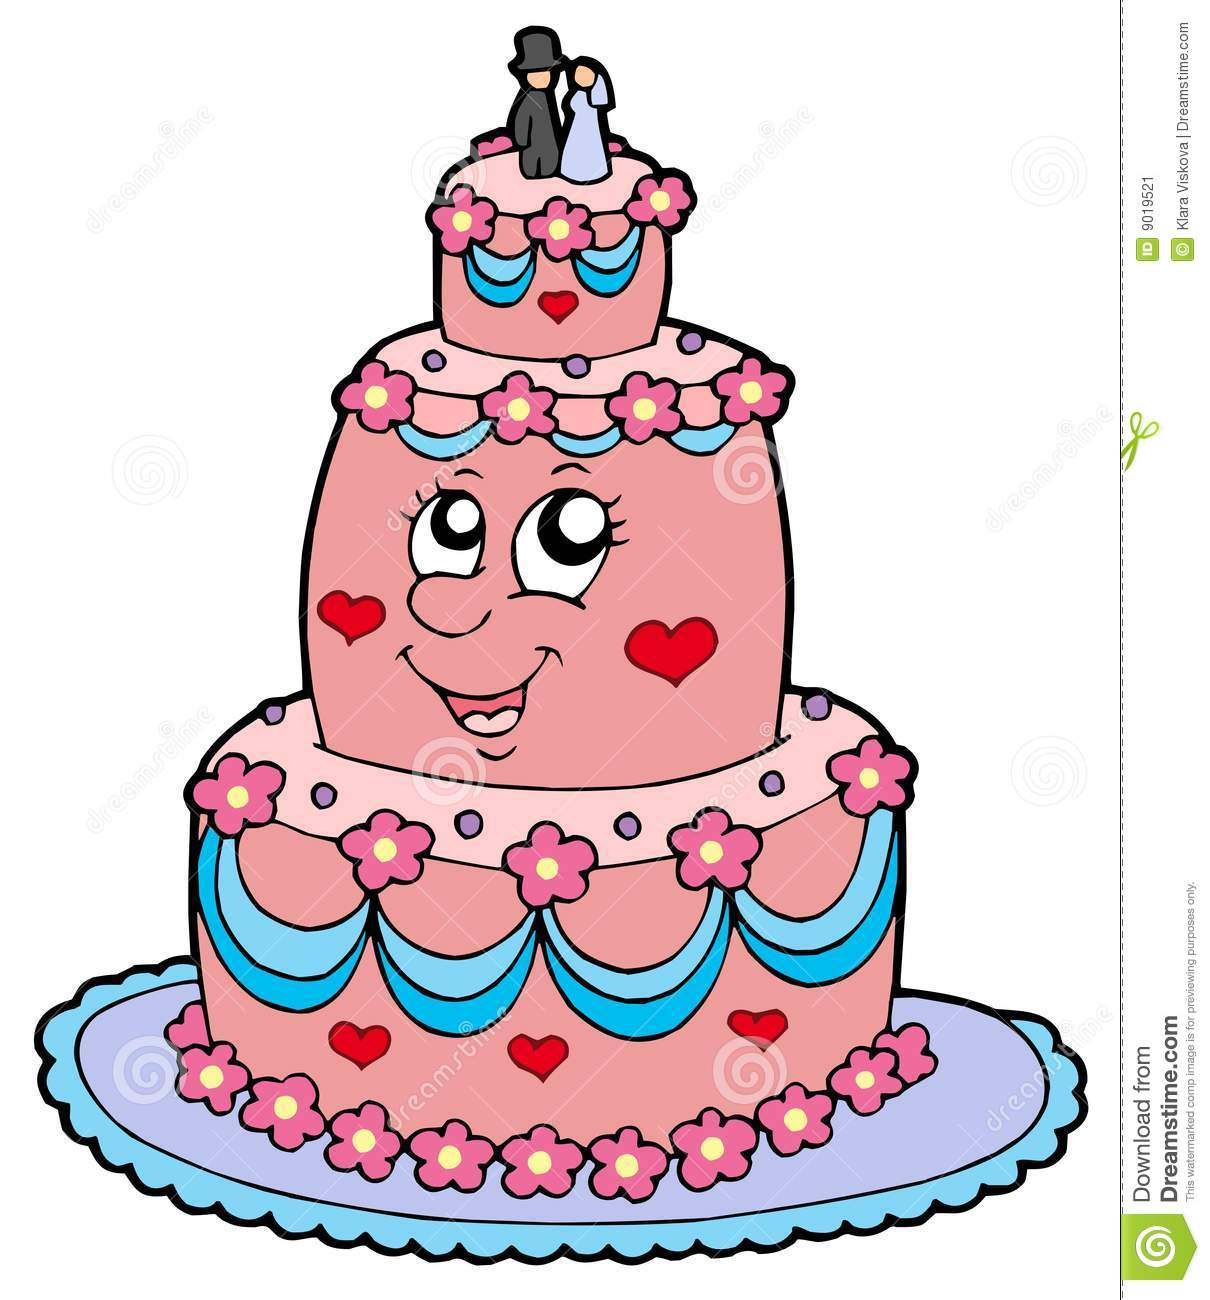 Wedding Cake Images Cartoon : Cartoon Wedding Cake Stock Image - Image: 9019521